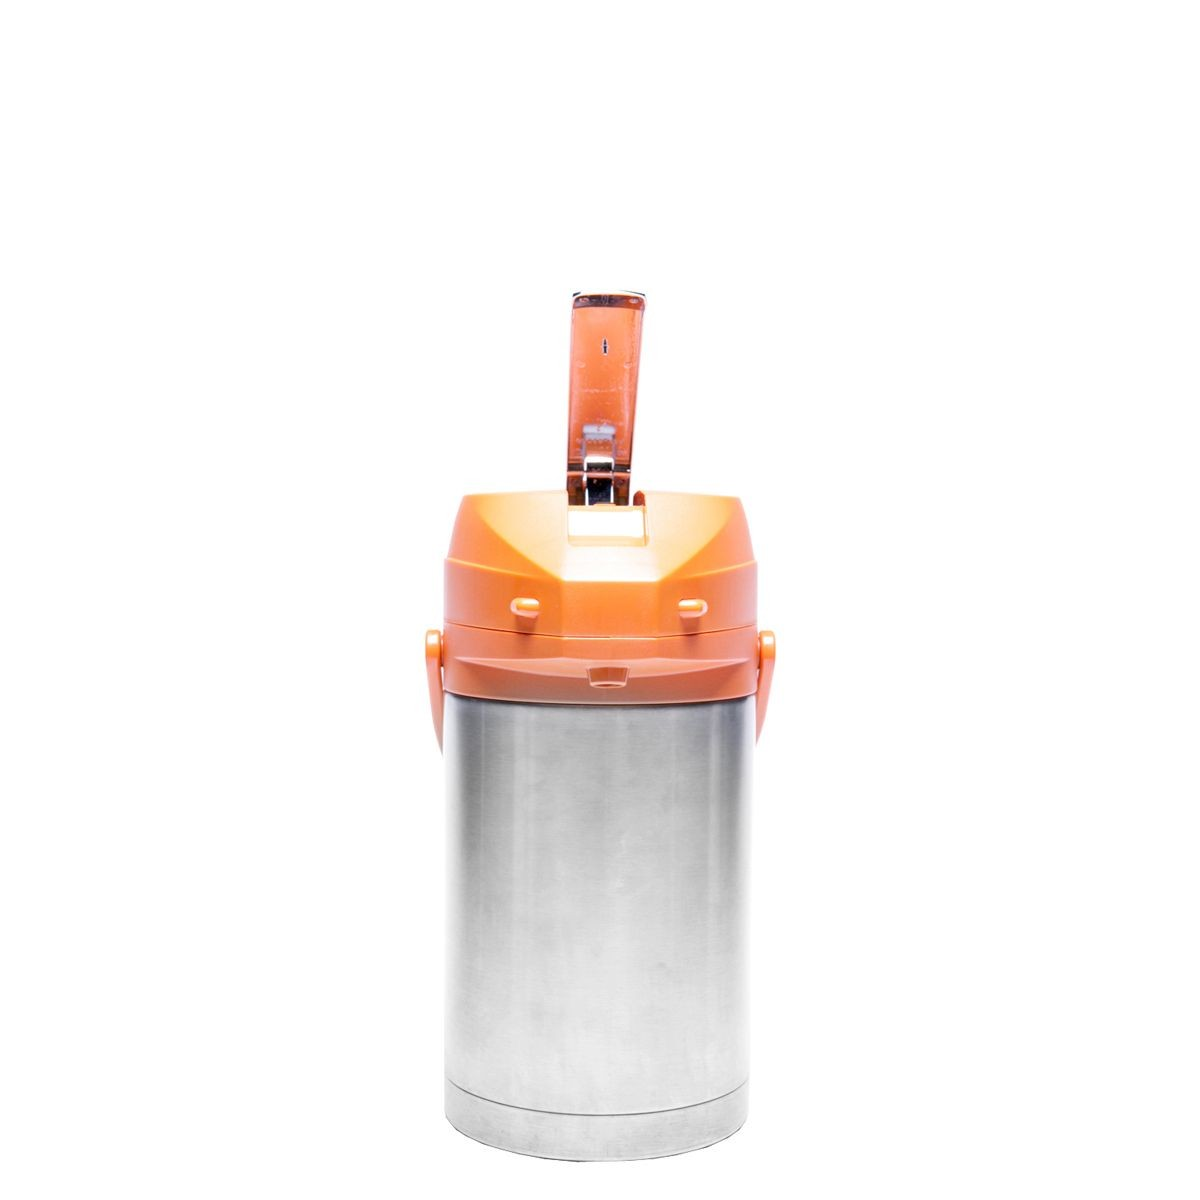 Service Ideas CTAL25OR Orange Top Stainless Steel Lined Color Me SVAC Airpot, 2.5 Liter